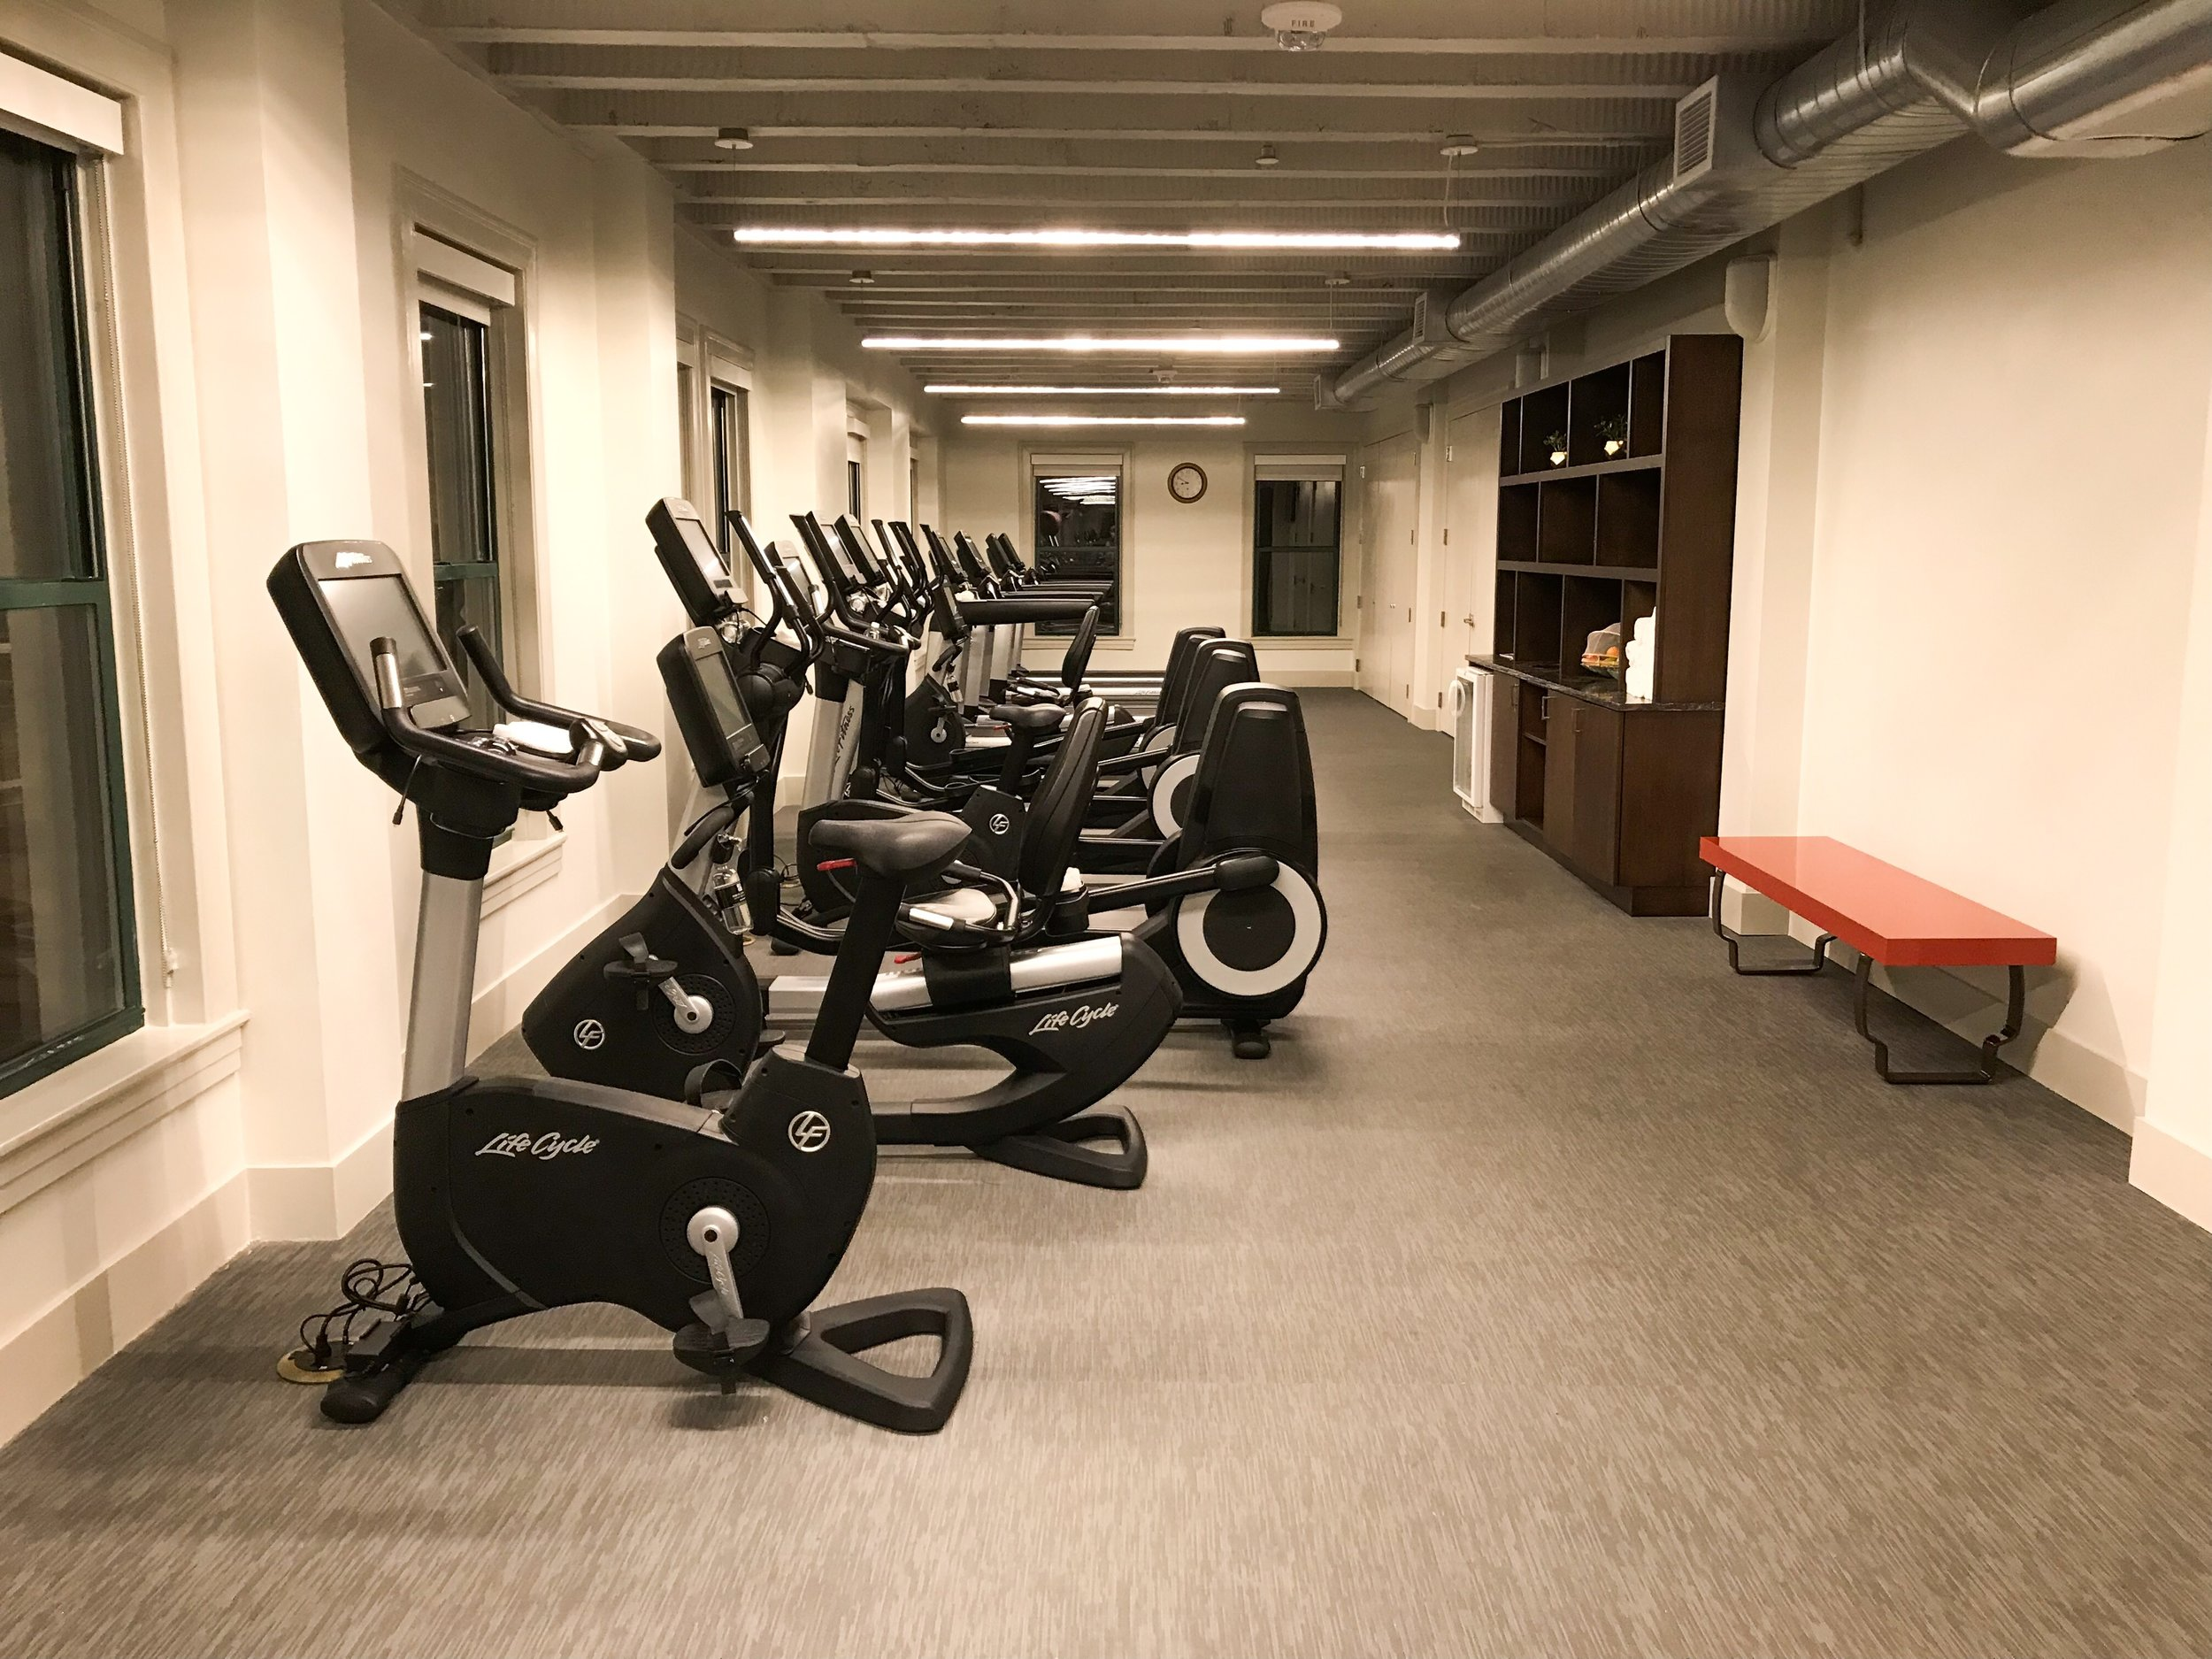 The workout room had several treadmills and stationary bikes, as well as complimentary water and towels.